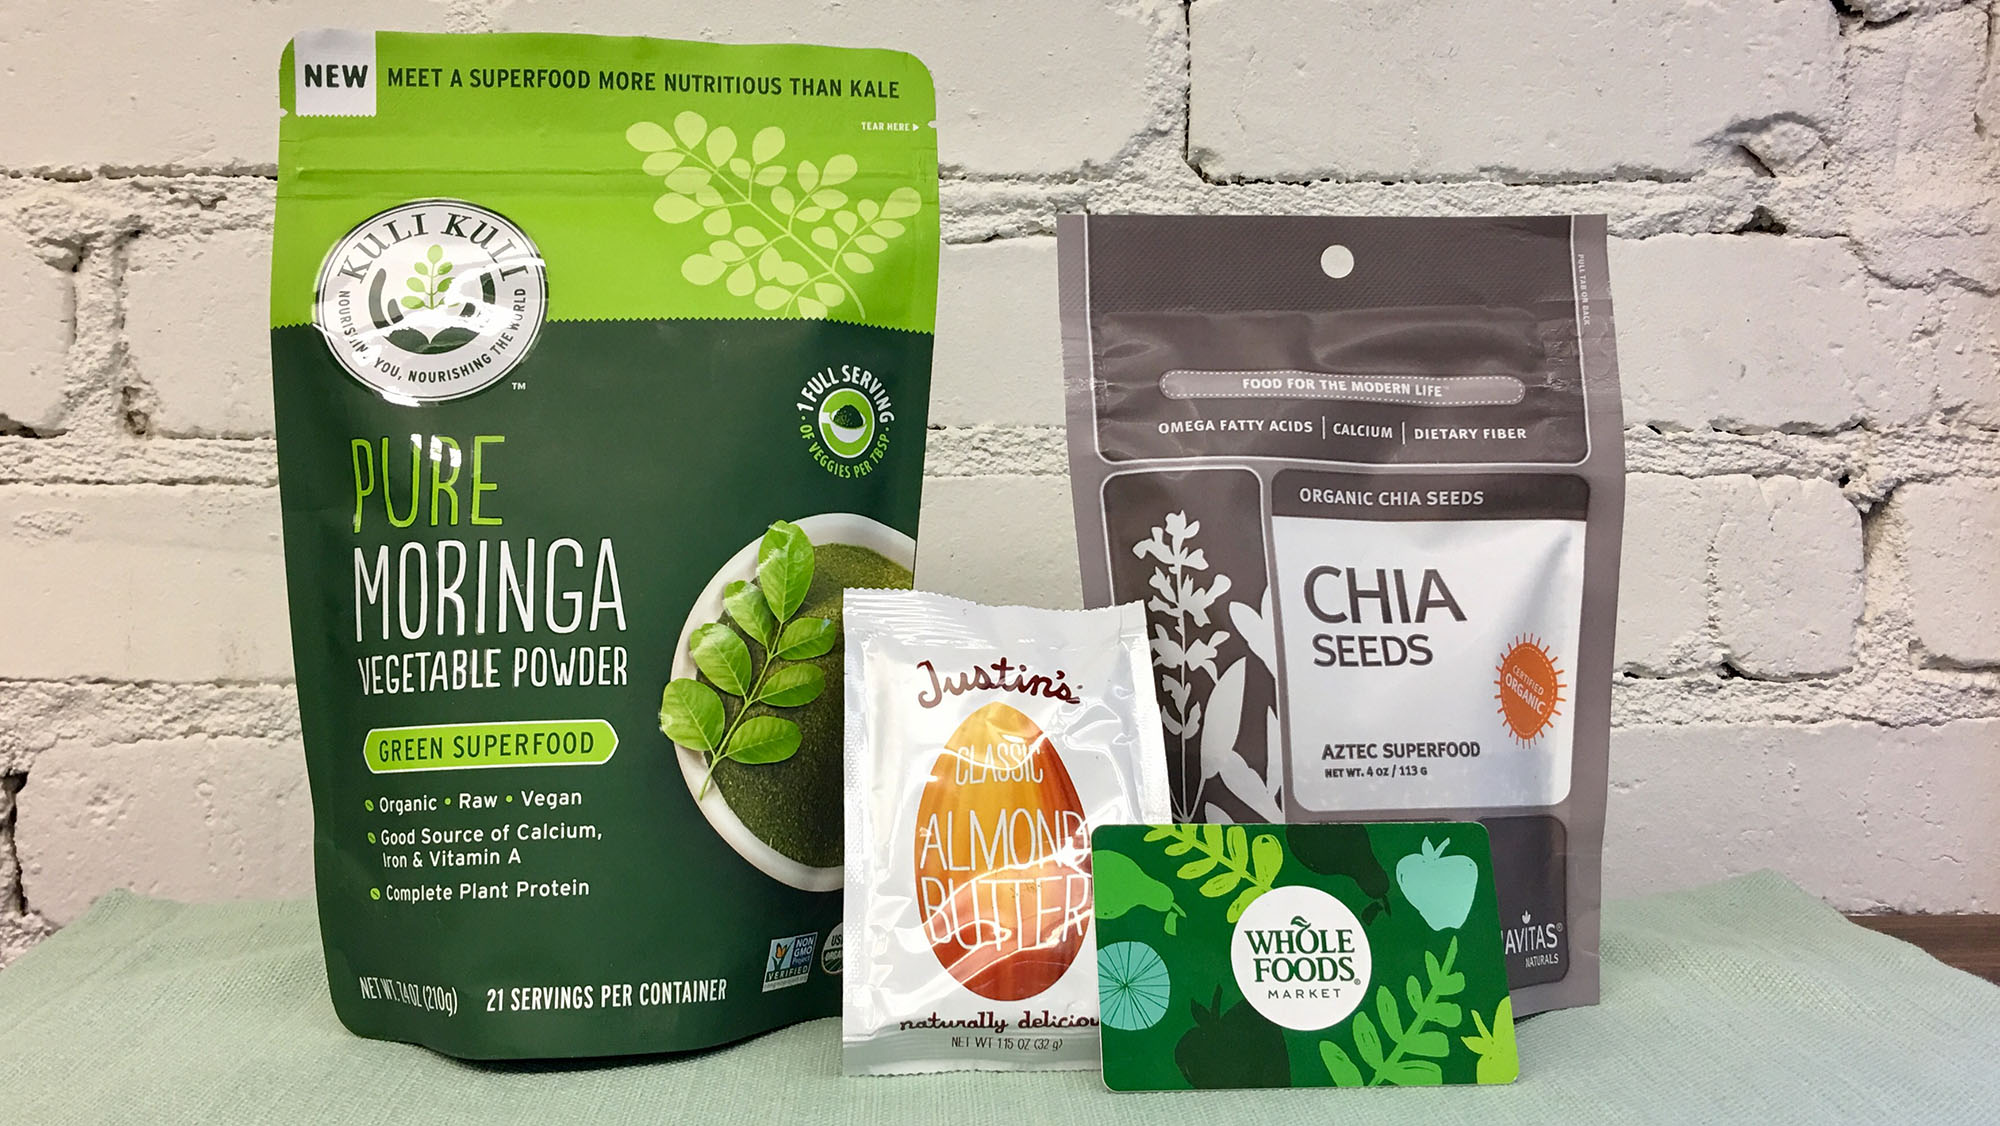 Image of Moringa Superfood Smoothie Giveaway prizes